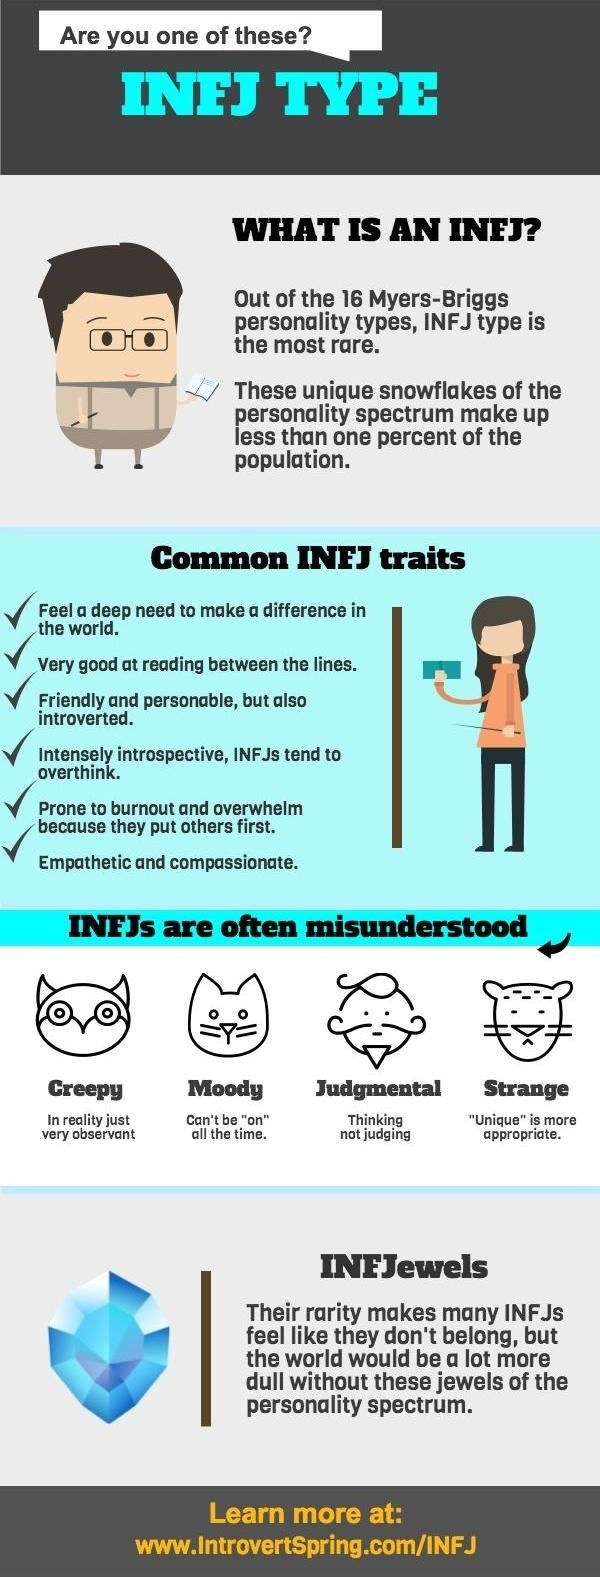 Online course: Be your real INFJ self without feeling frustrated